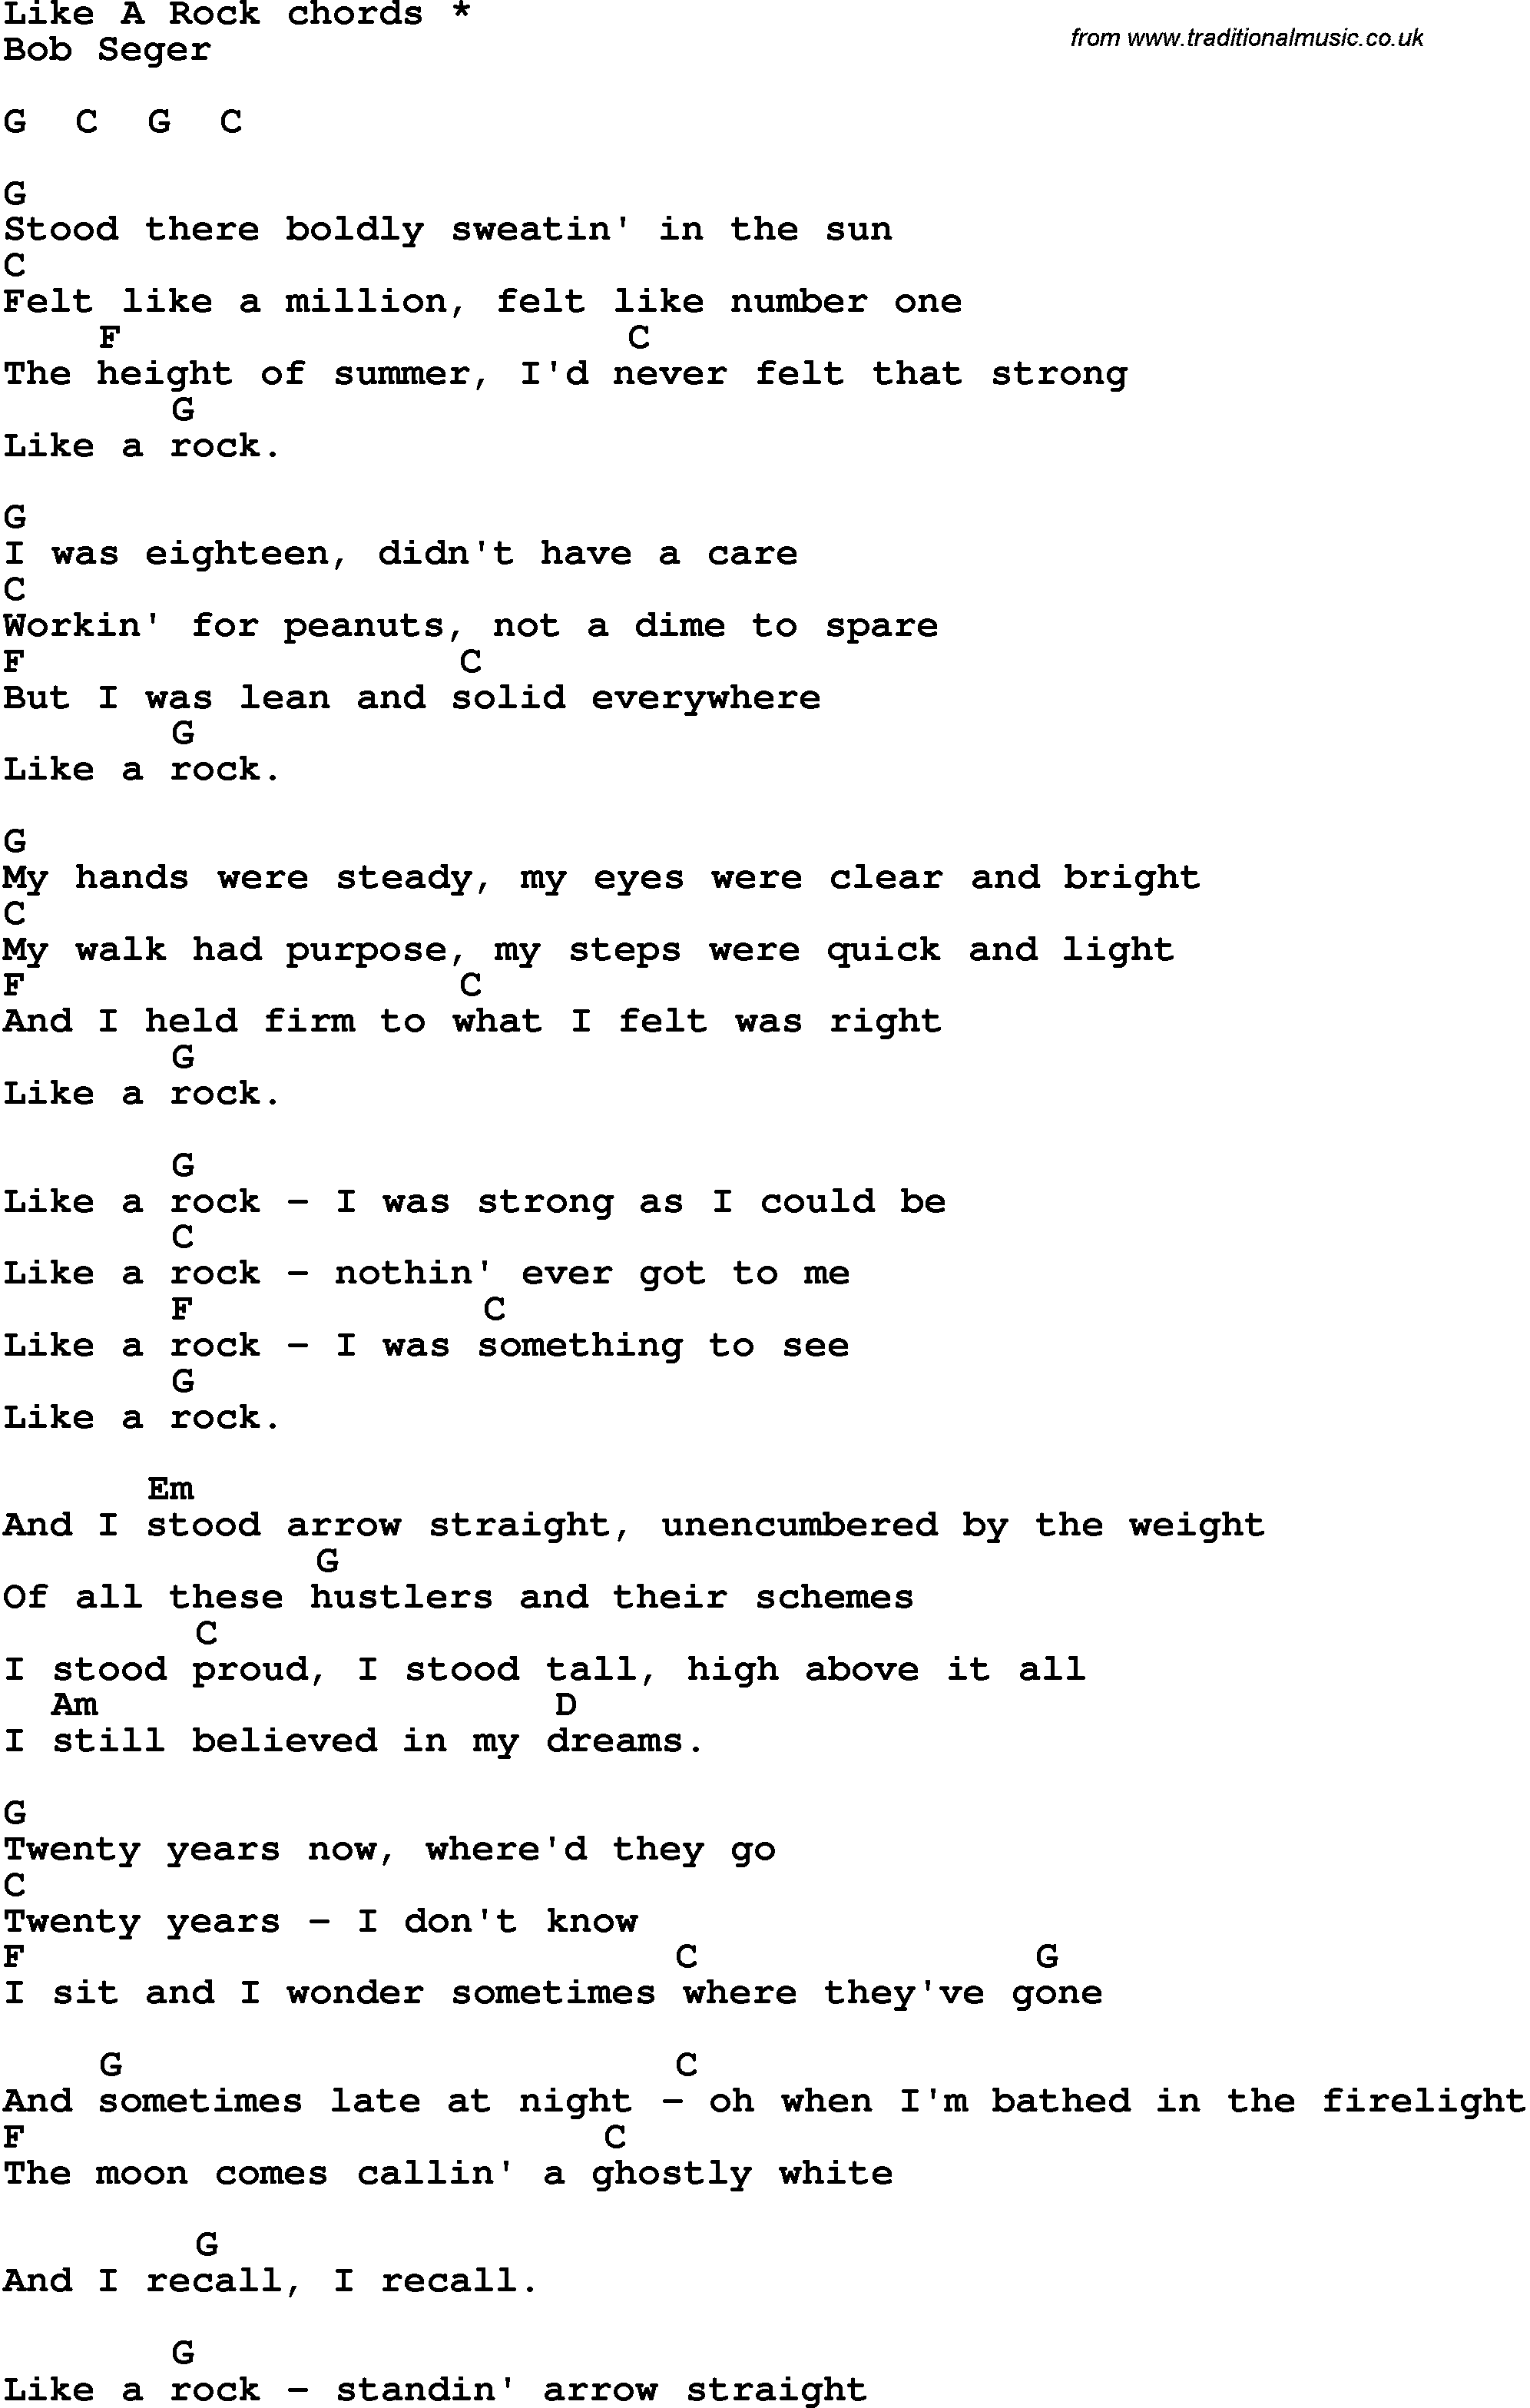 Song lyrics with guitar chords for Like A Rock